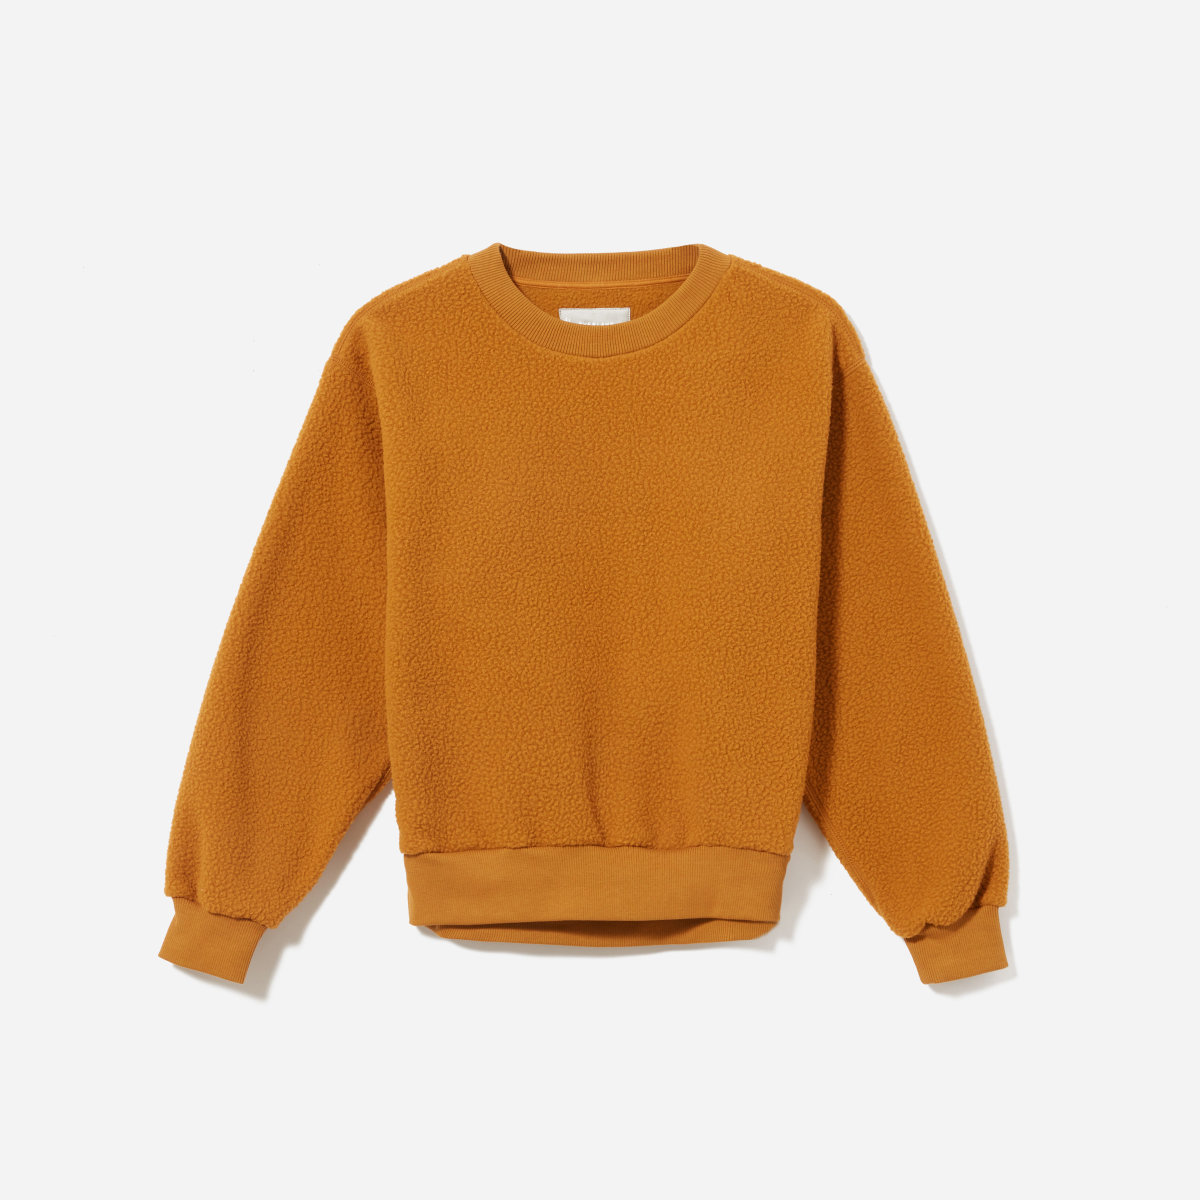 Everlane 'ReNew Fleece' sweatshirt in Golden Brown,  $55